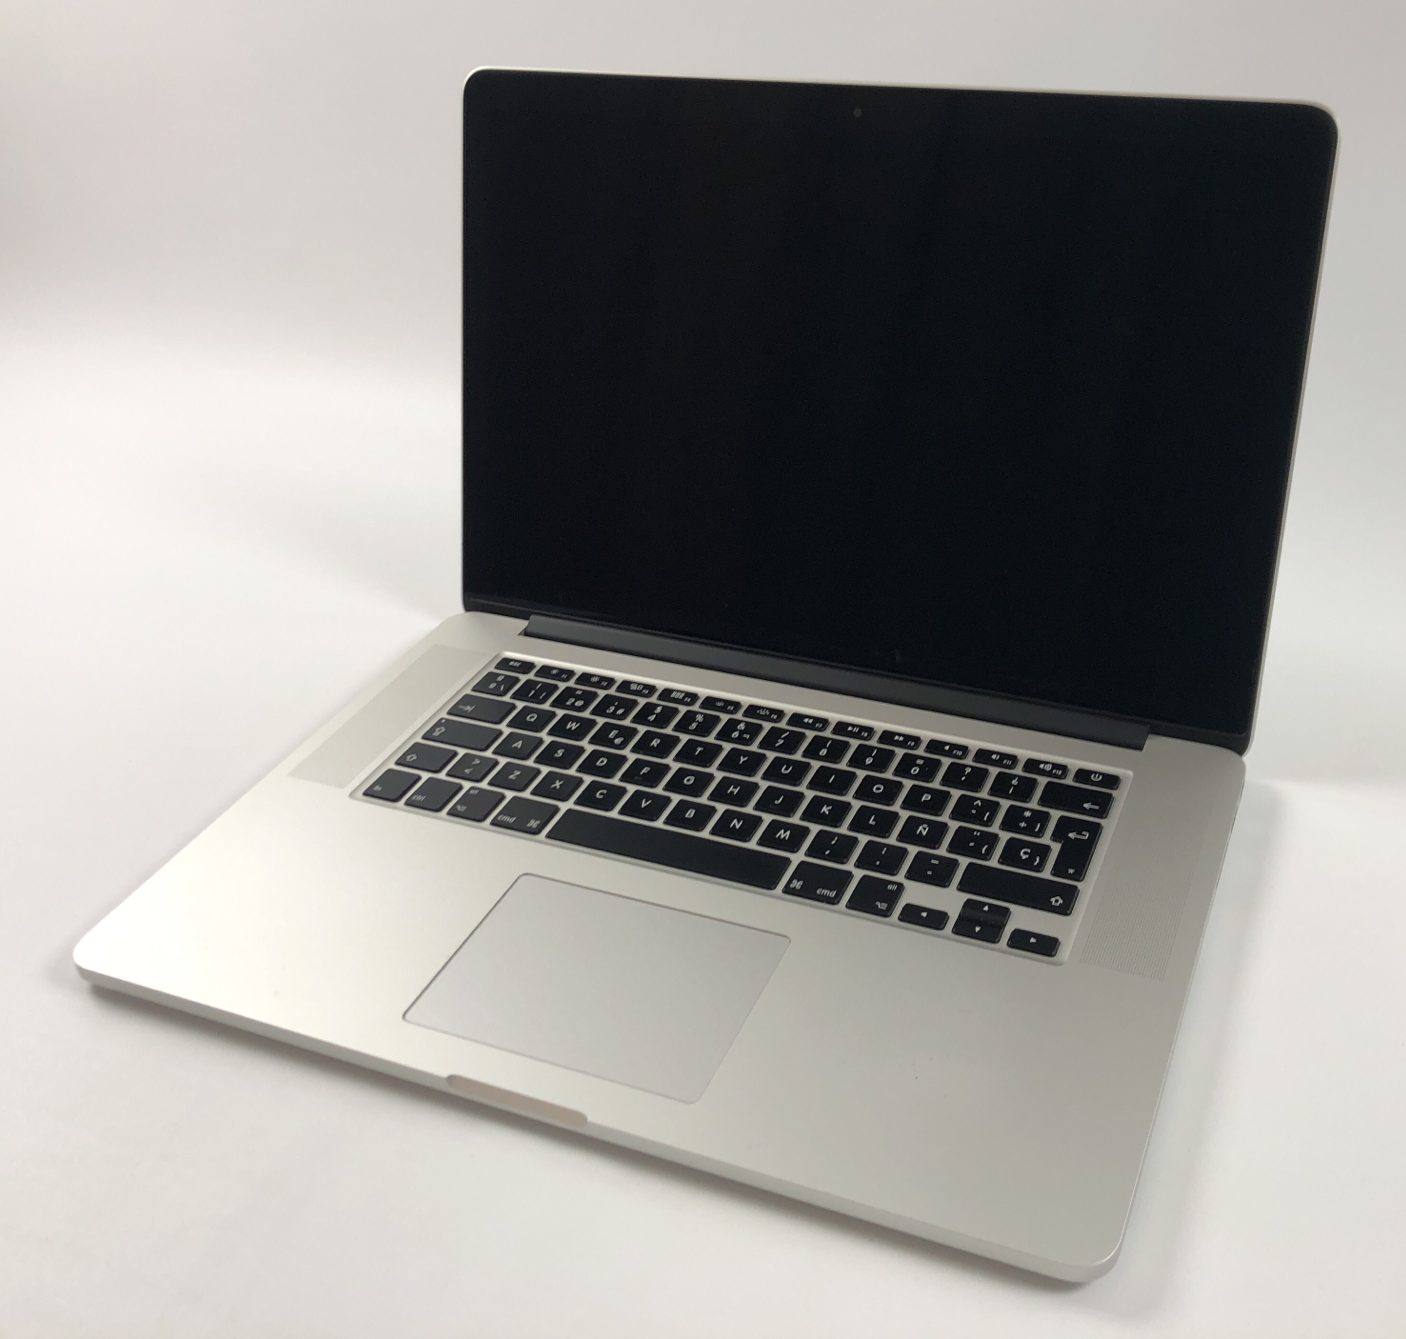 "MacBook Pro Retina 15"" Mid 2015 (Intel Quad-Core i7 2.2 GHz 16 GB RAM 256 GB SSD), Intel Quad-Core i7 2.2 GHz, 16 GB RAM, 256 GB SSD, imagen 1"